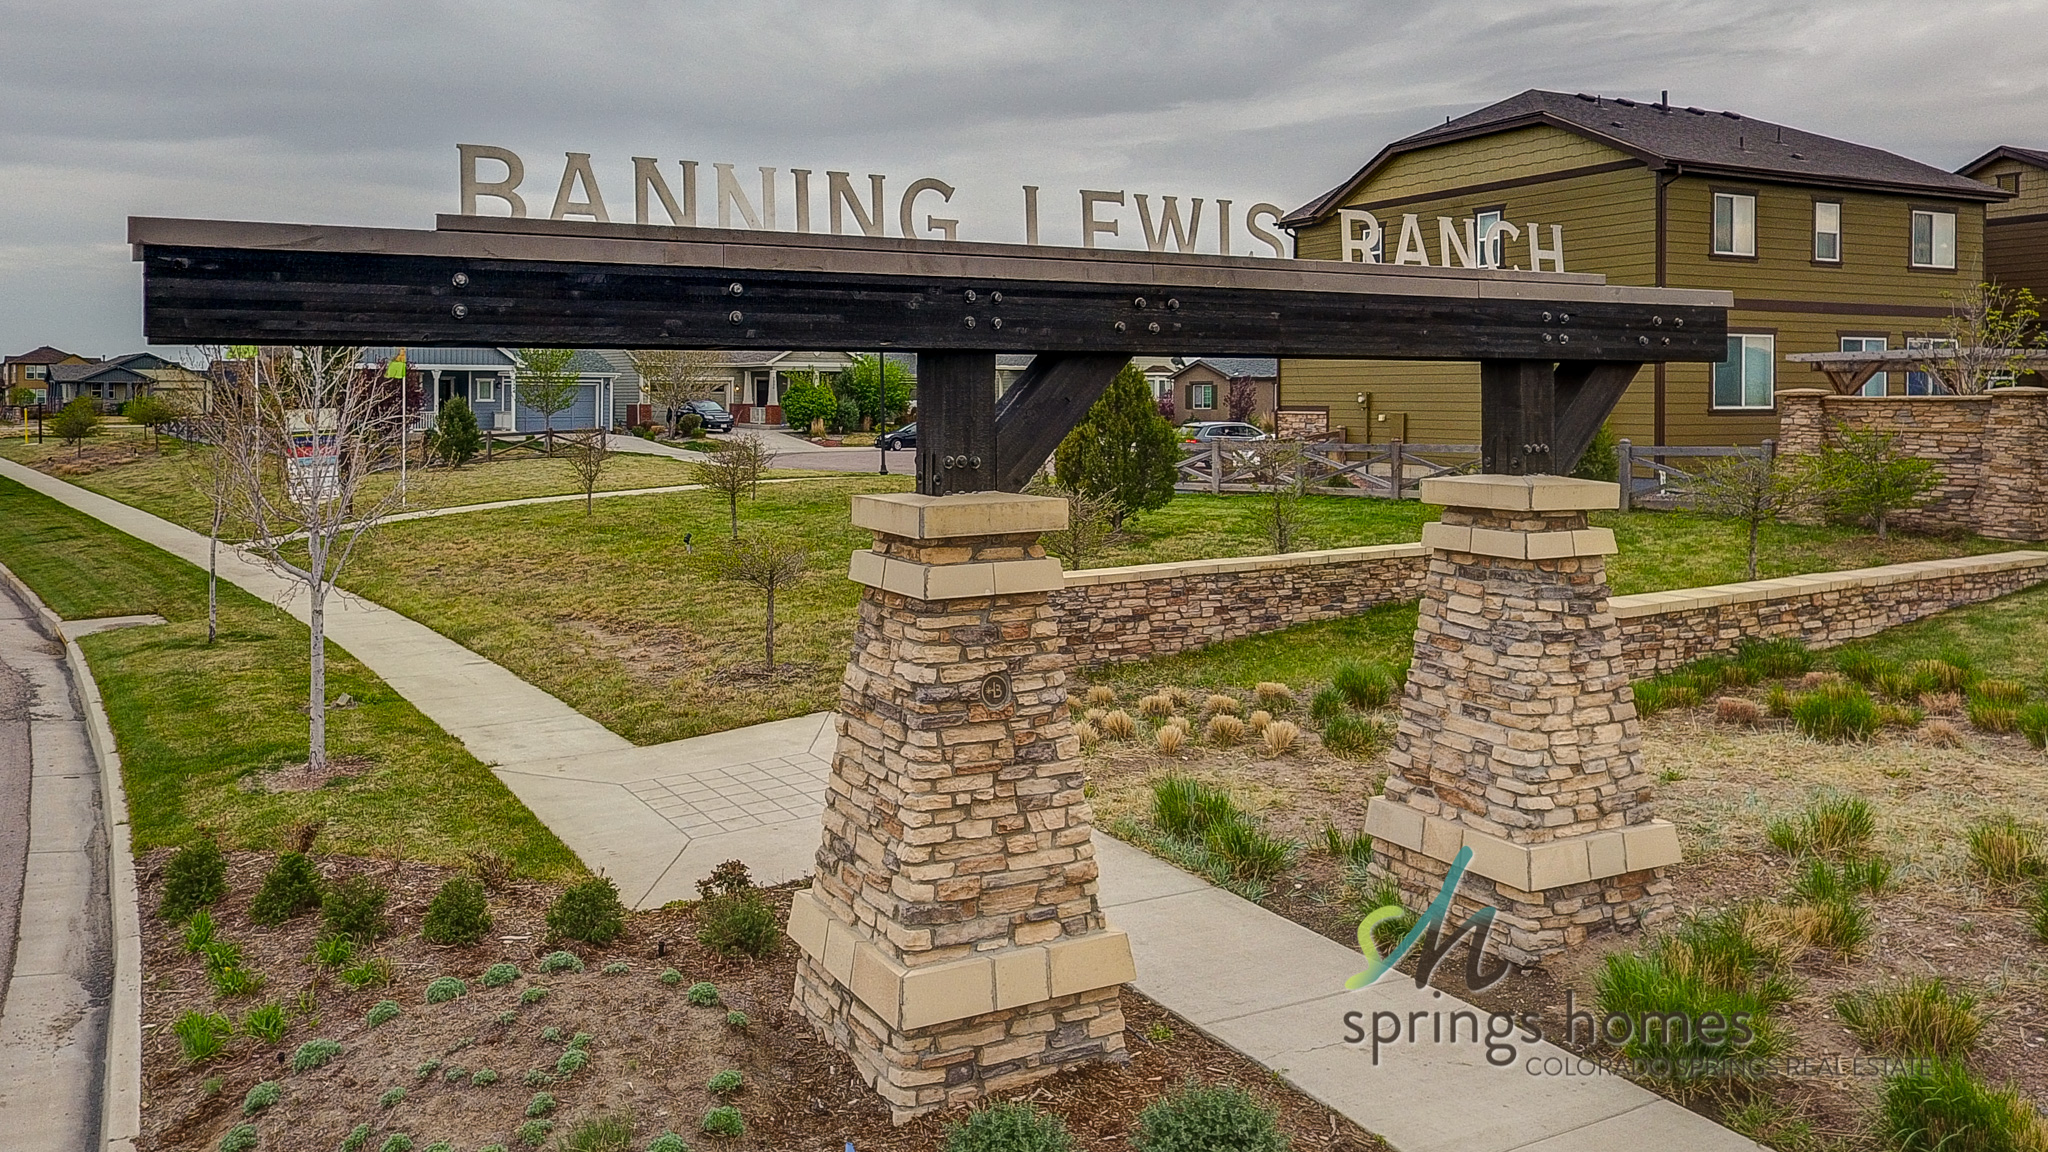 Banning Lewis Ranch Homes for Sale